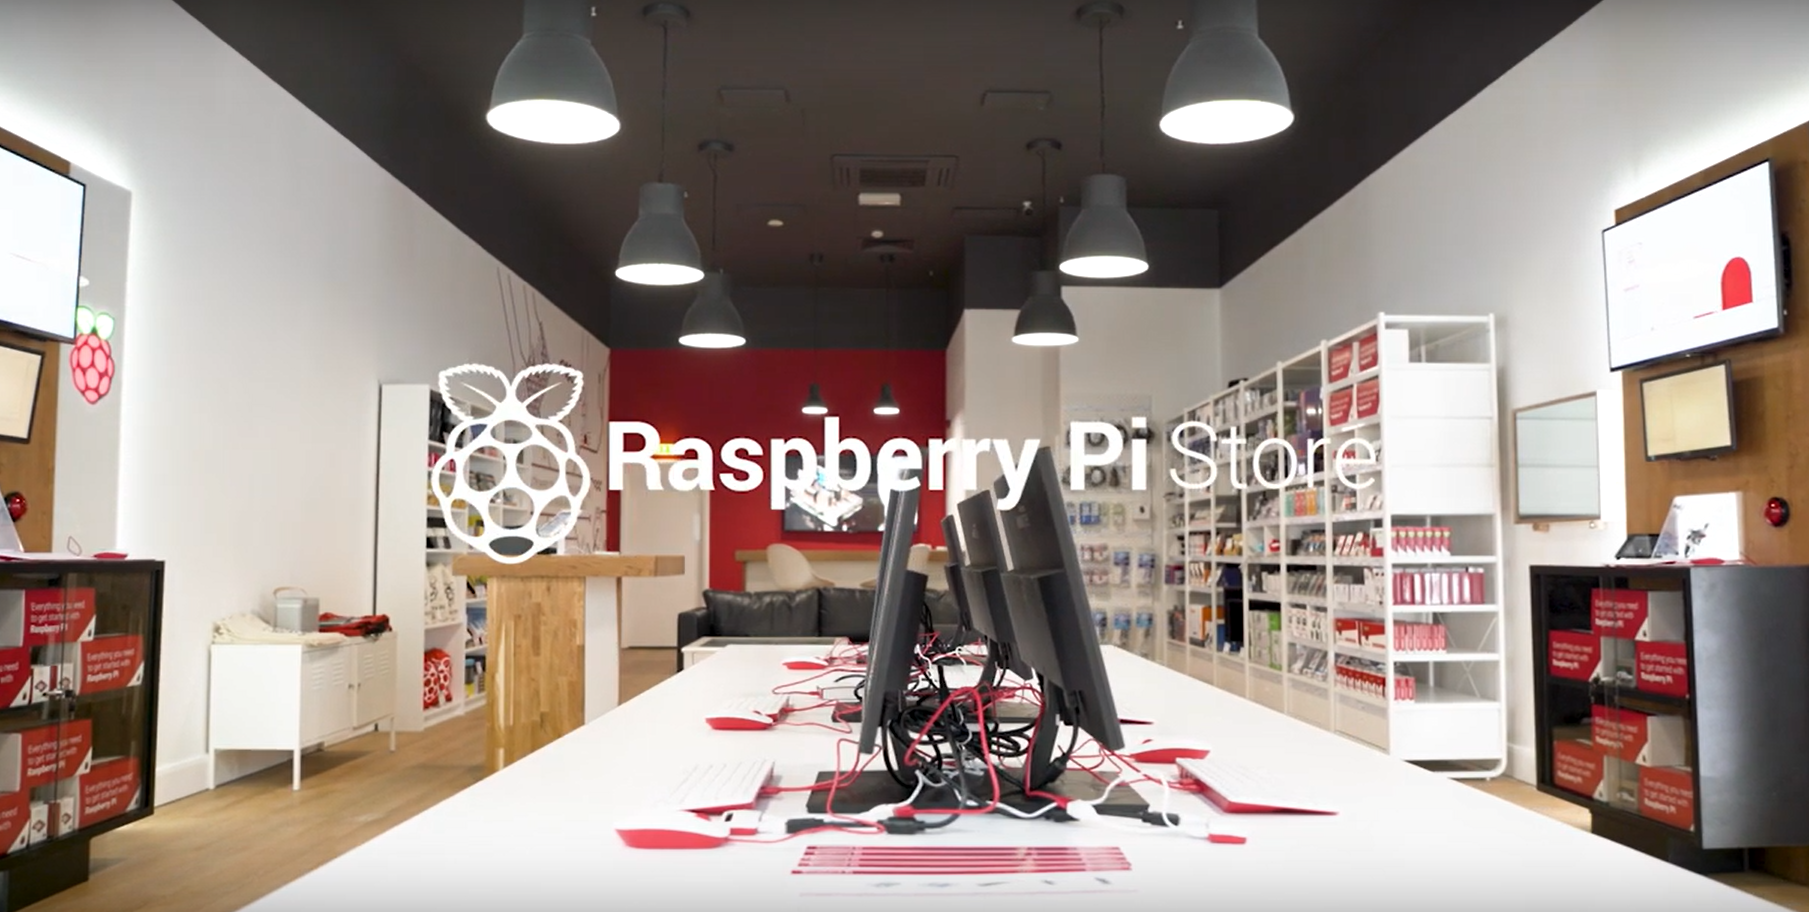 Raspberry Pi joins the brick-and-mortar brigade